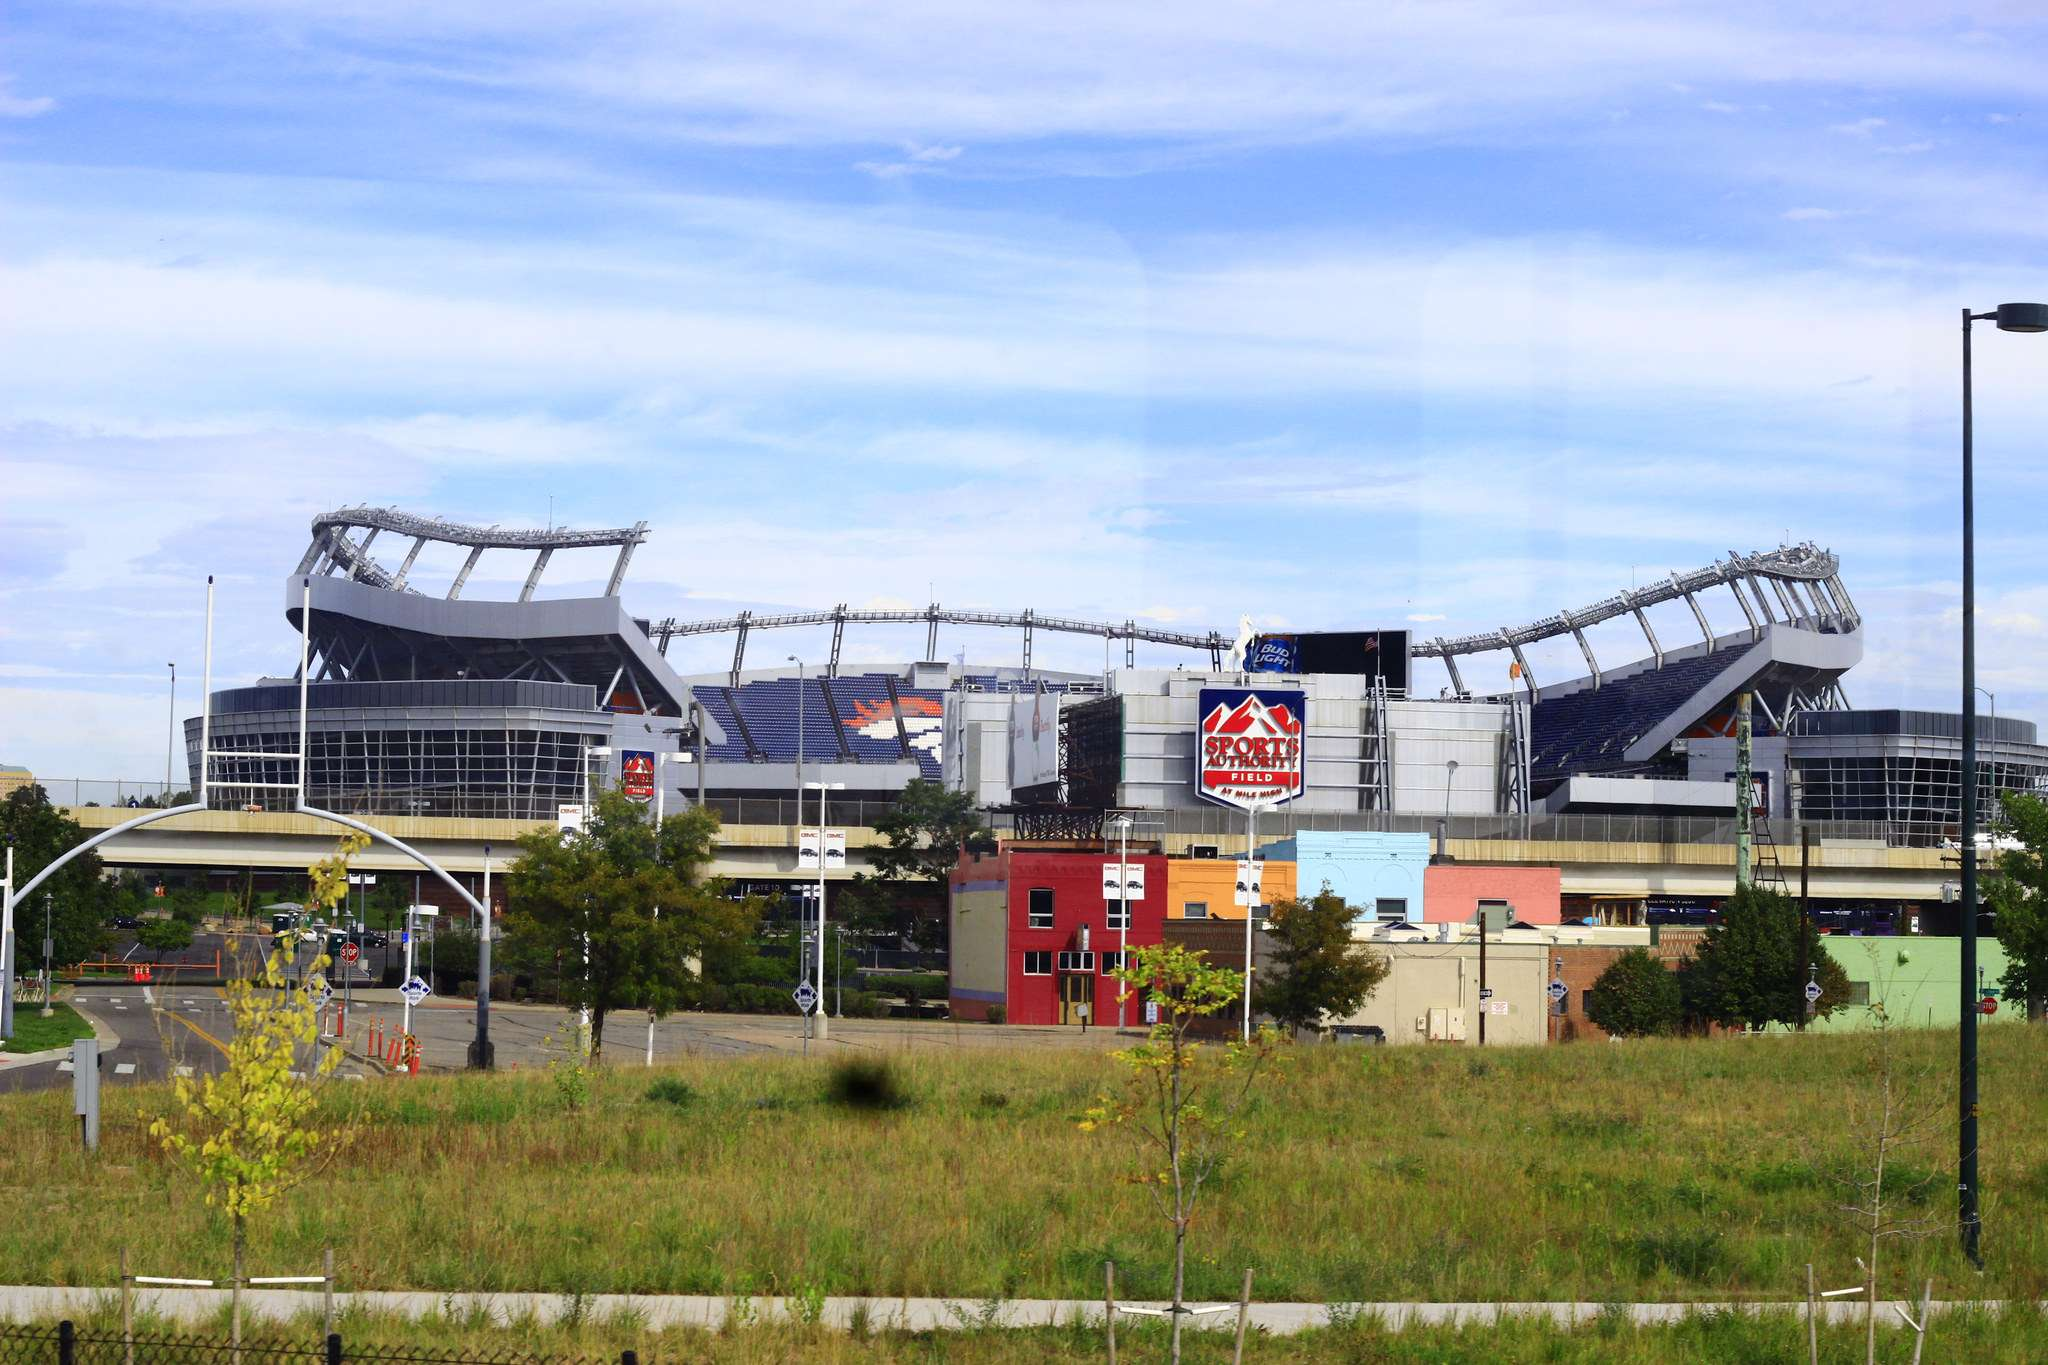 Broncos Stadium at Mile High